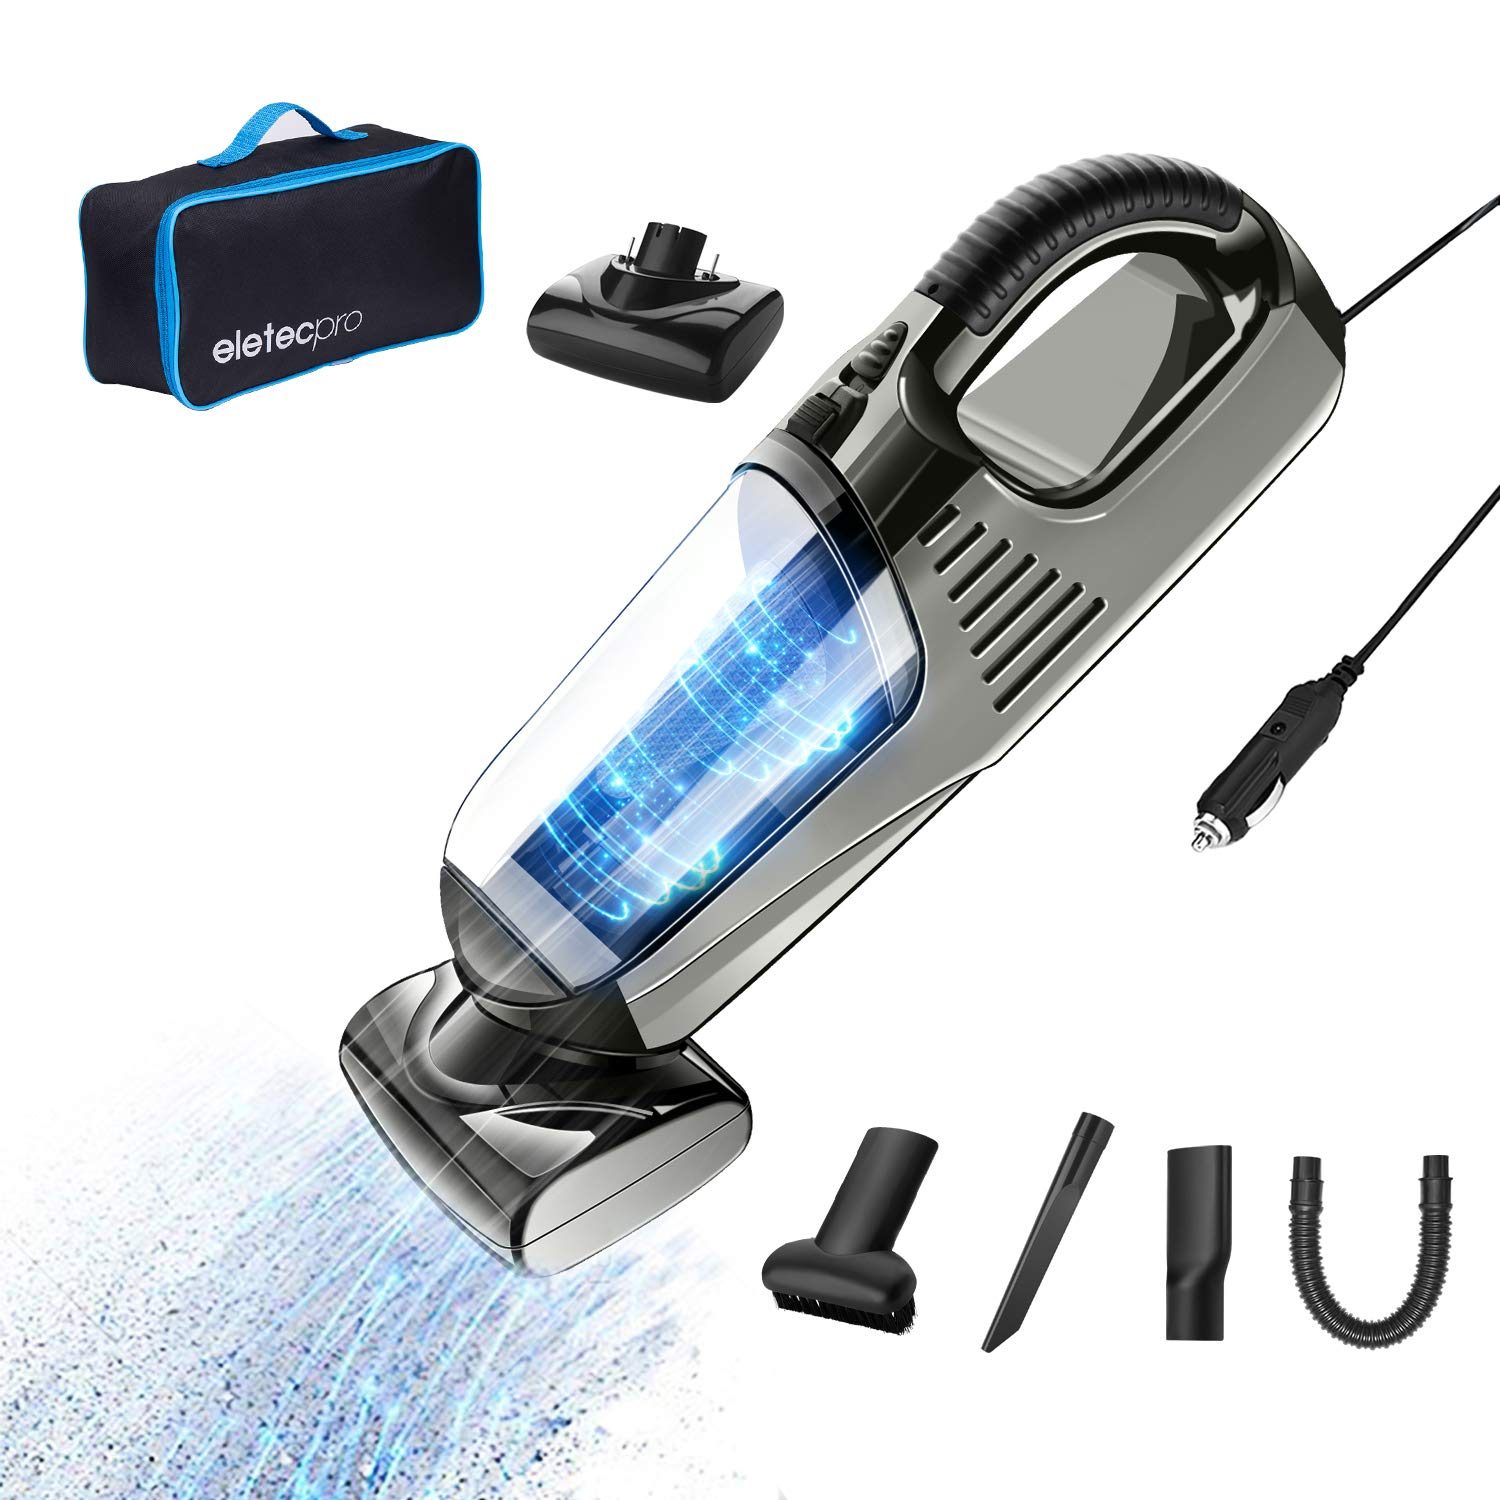 Car Vacuum Cleaner >> Details About Handheld Car Vacuum Cleaner Corded Dc 12 V 90 W High Power With 4000 Suction New